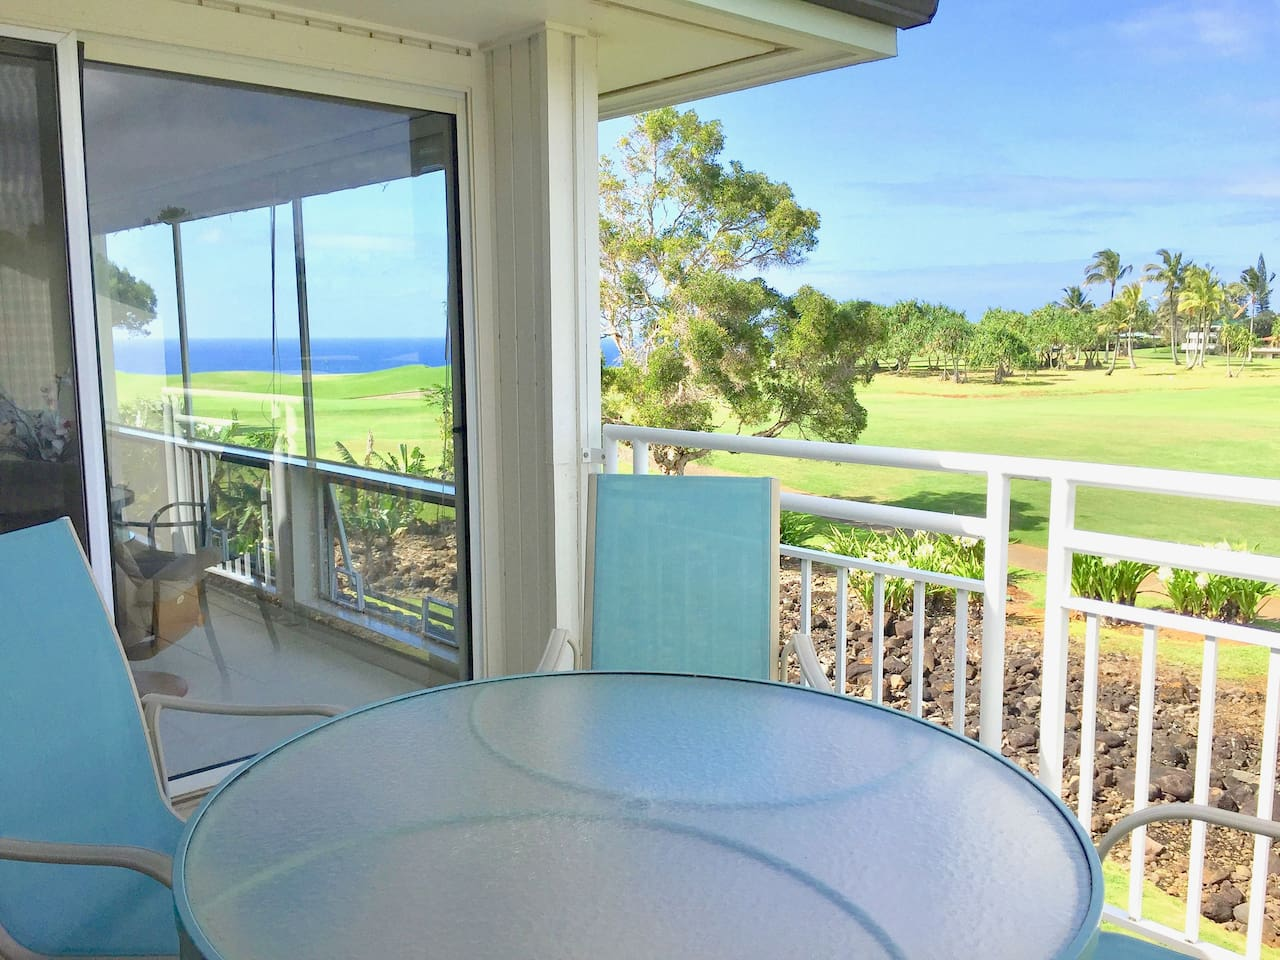 Garden Island Paradise: Quiet, Aloha, and AC - Apartments for Rent ...